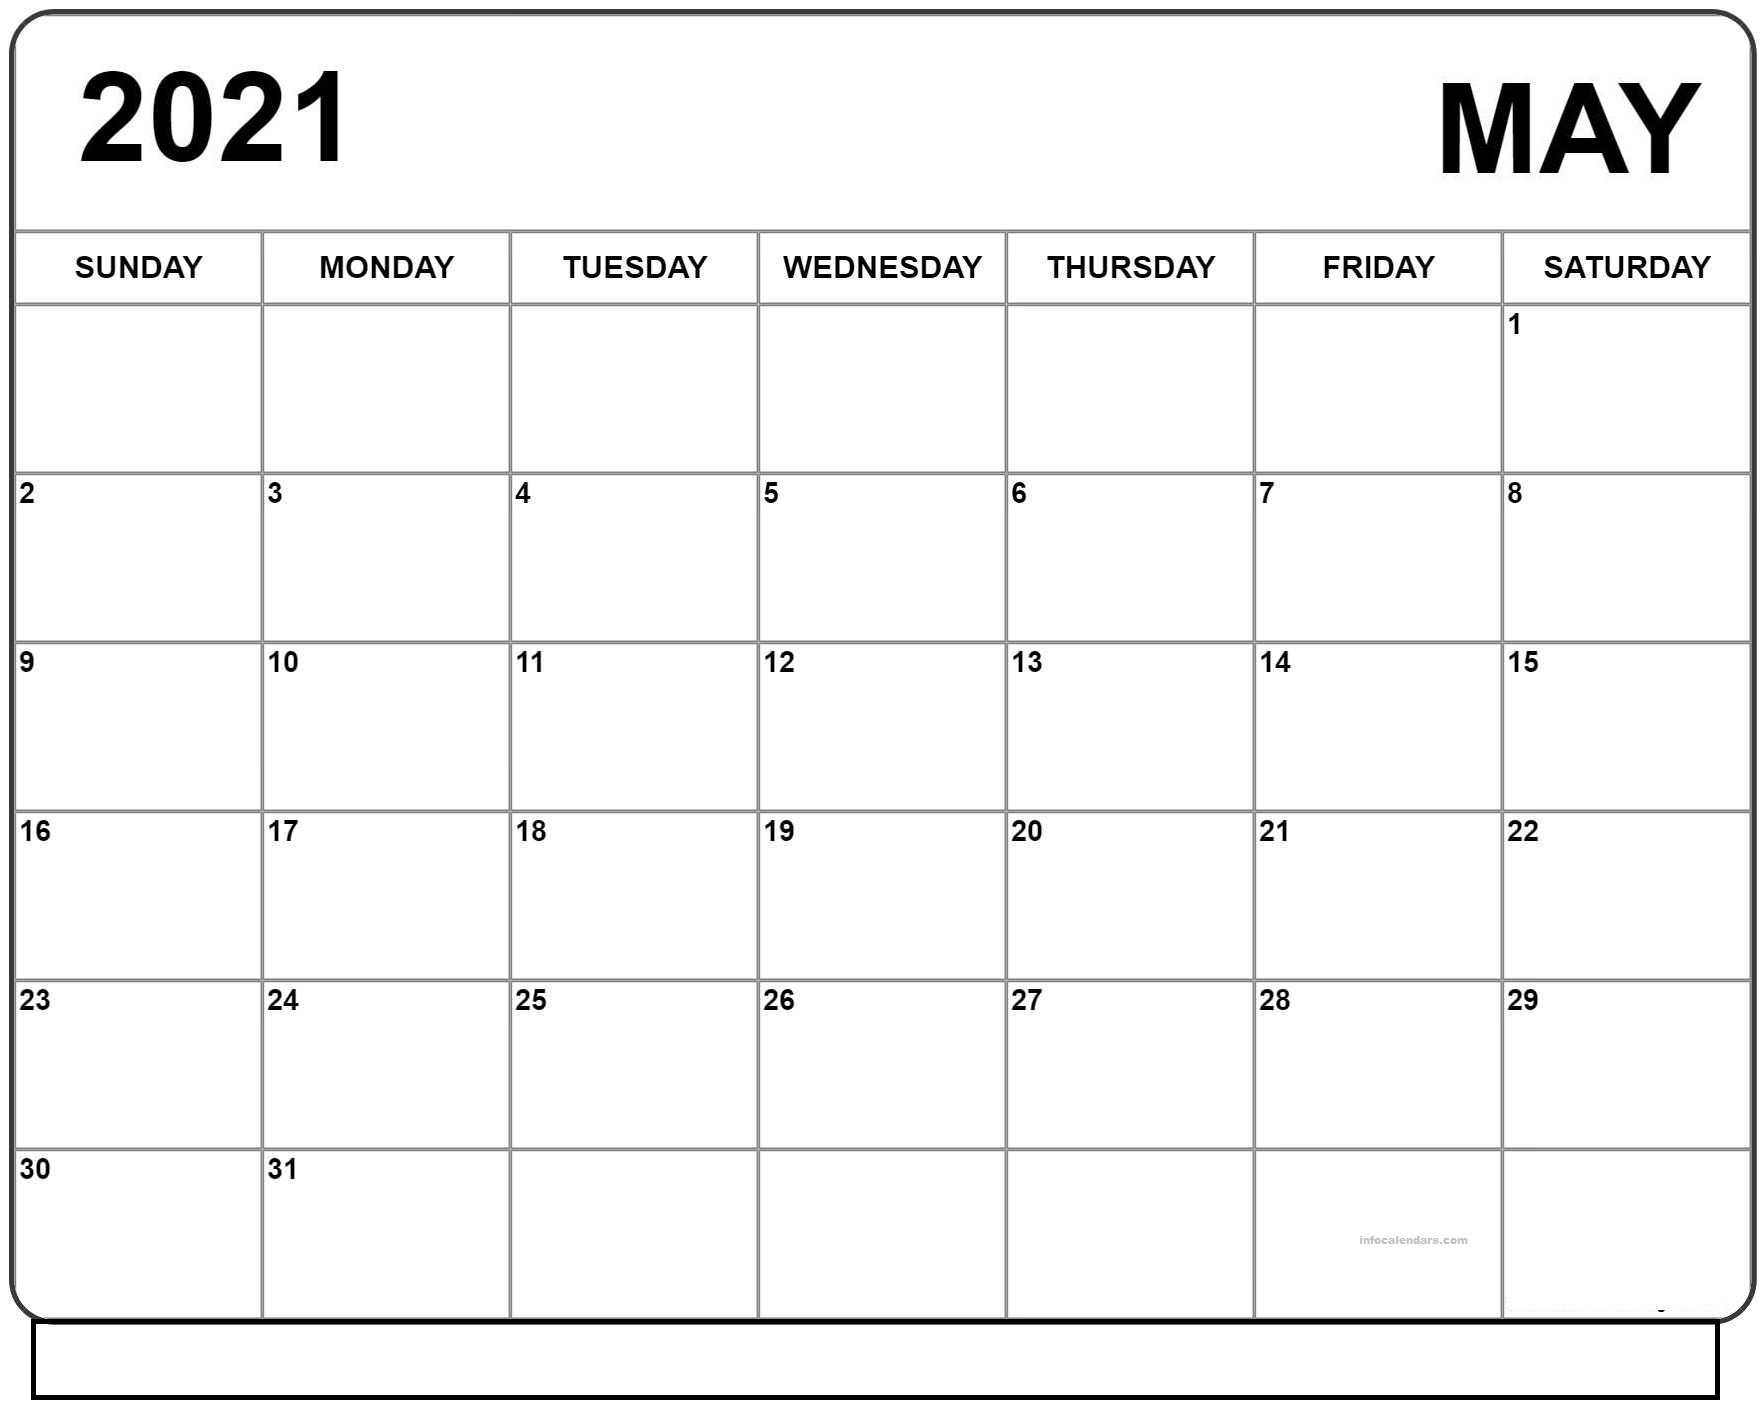 May 2021 Editable Calendar For Schedule